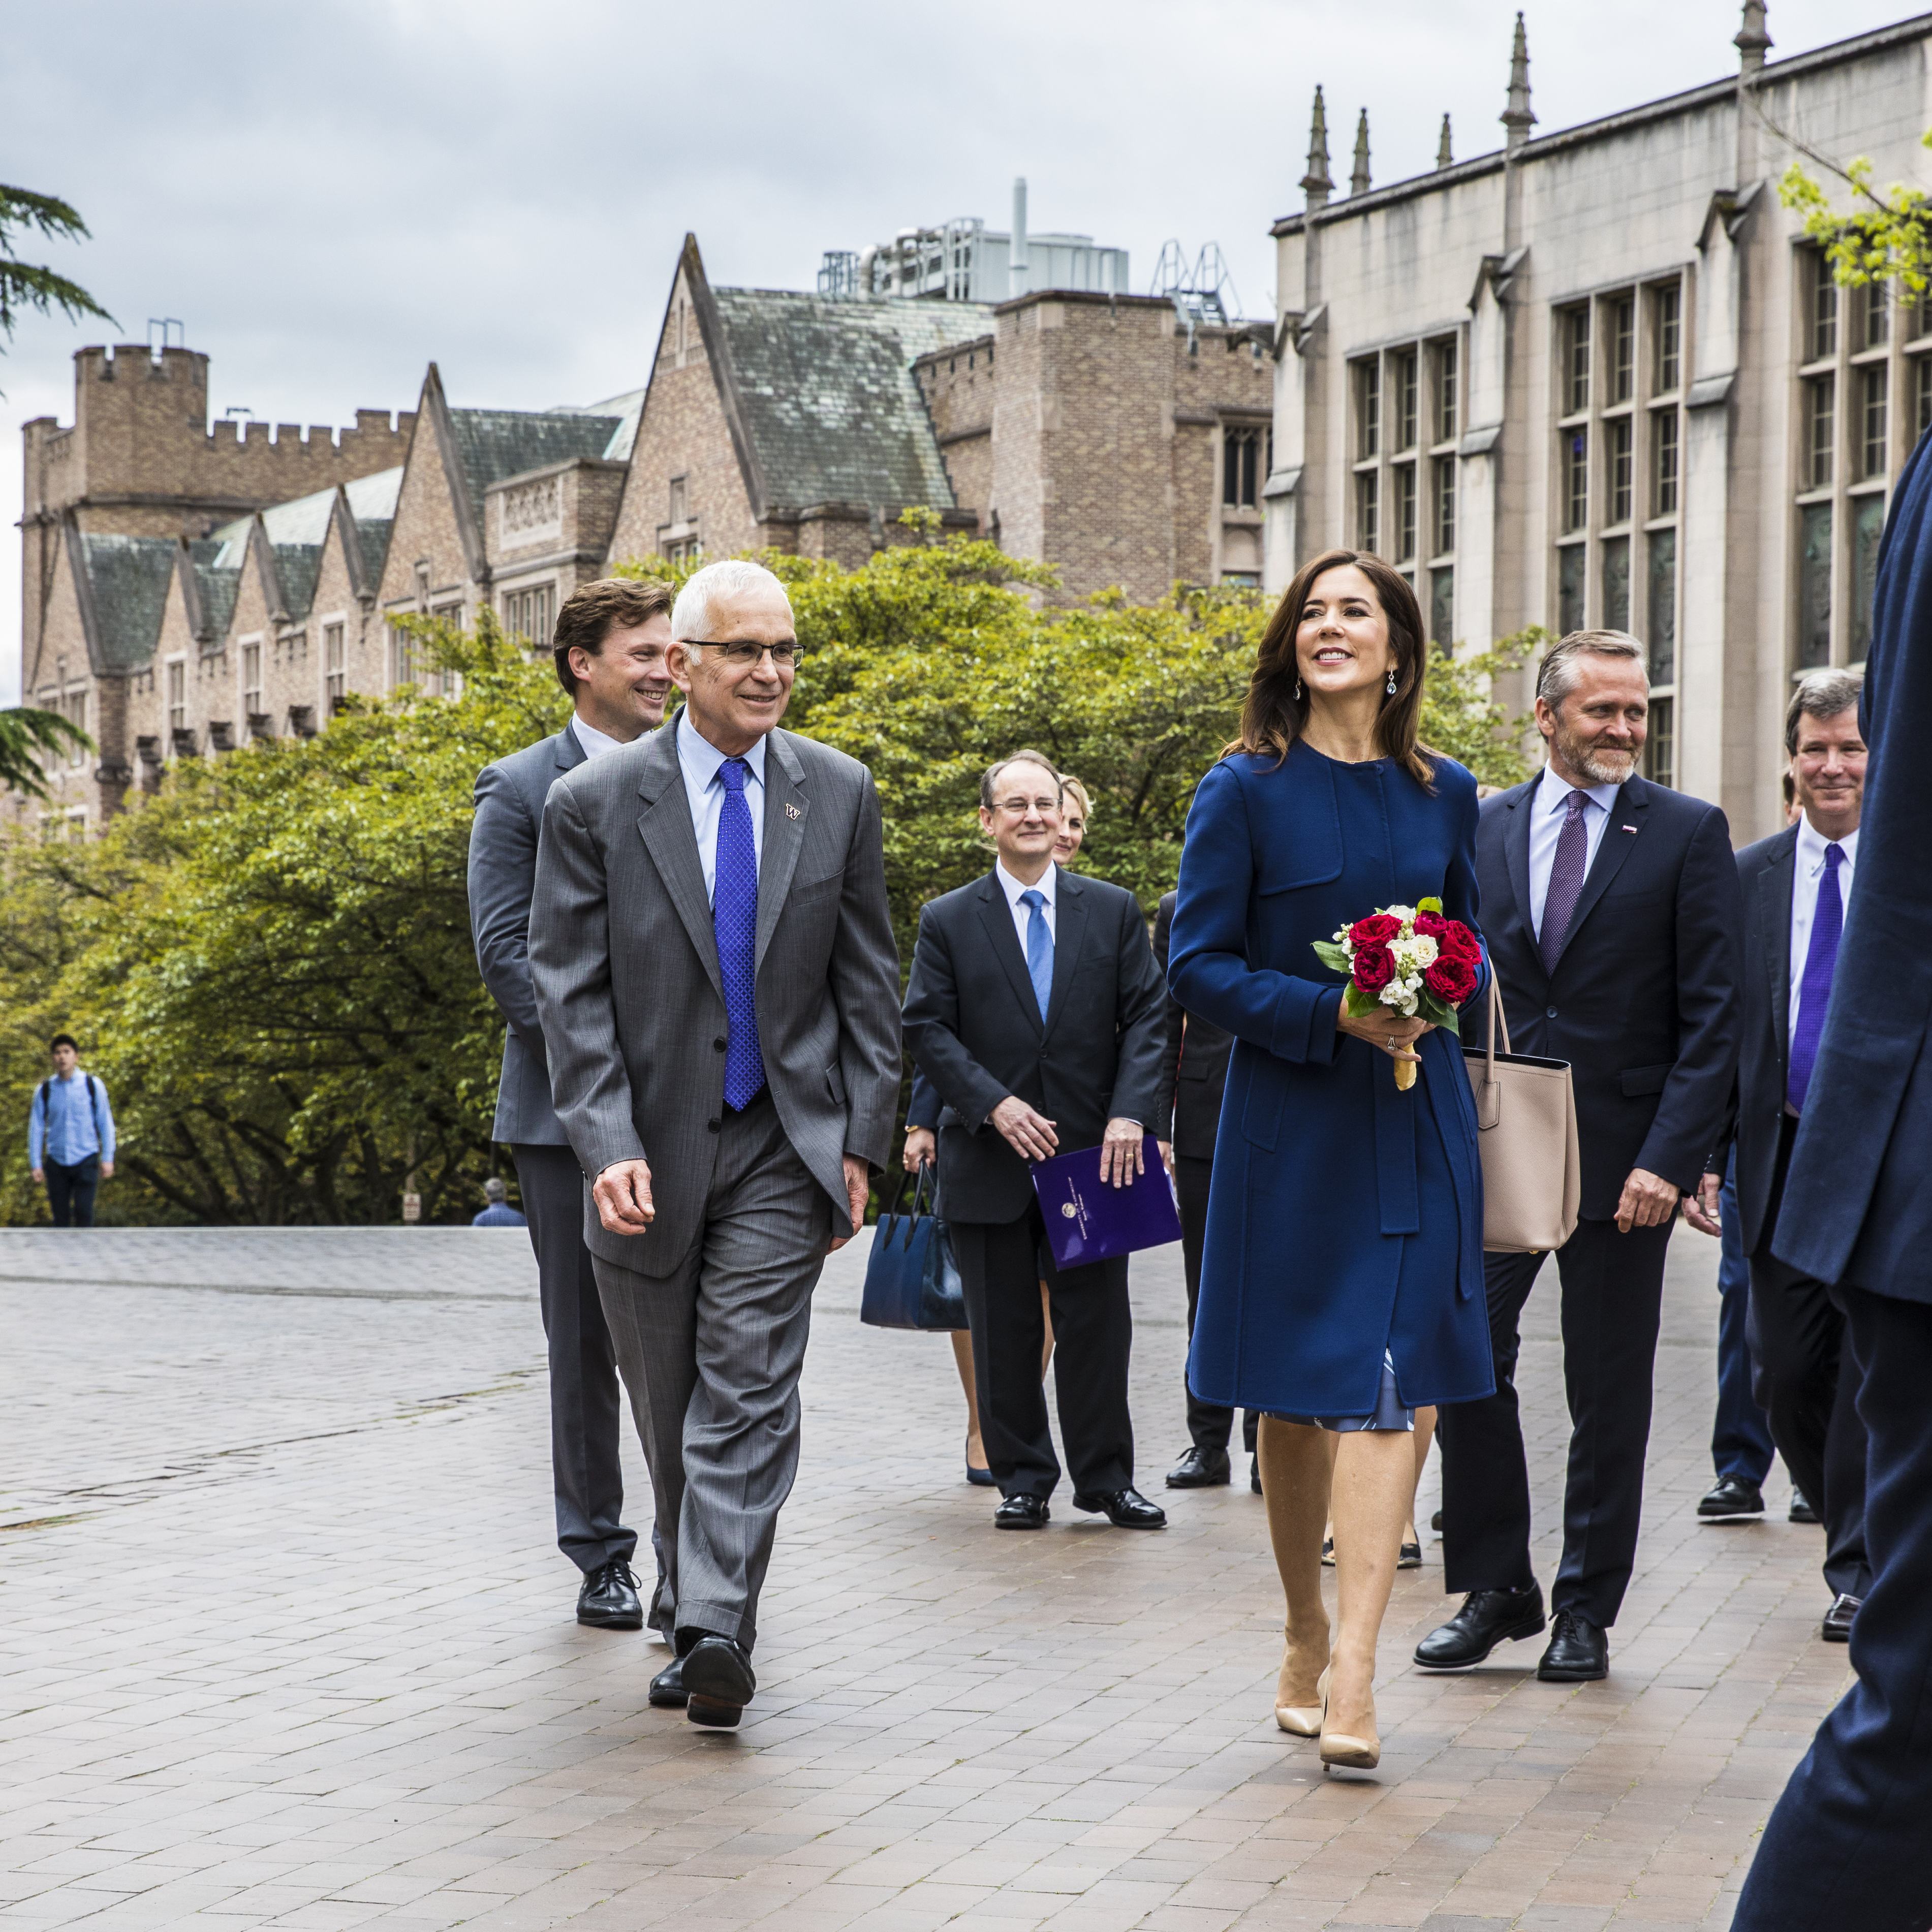 Denmark's Crown Princess Mary walks across Red Square accompanied by Provost Jerry Baldasty.